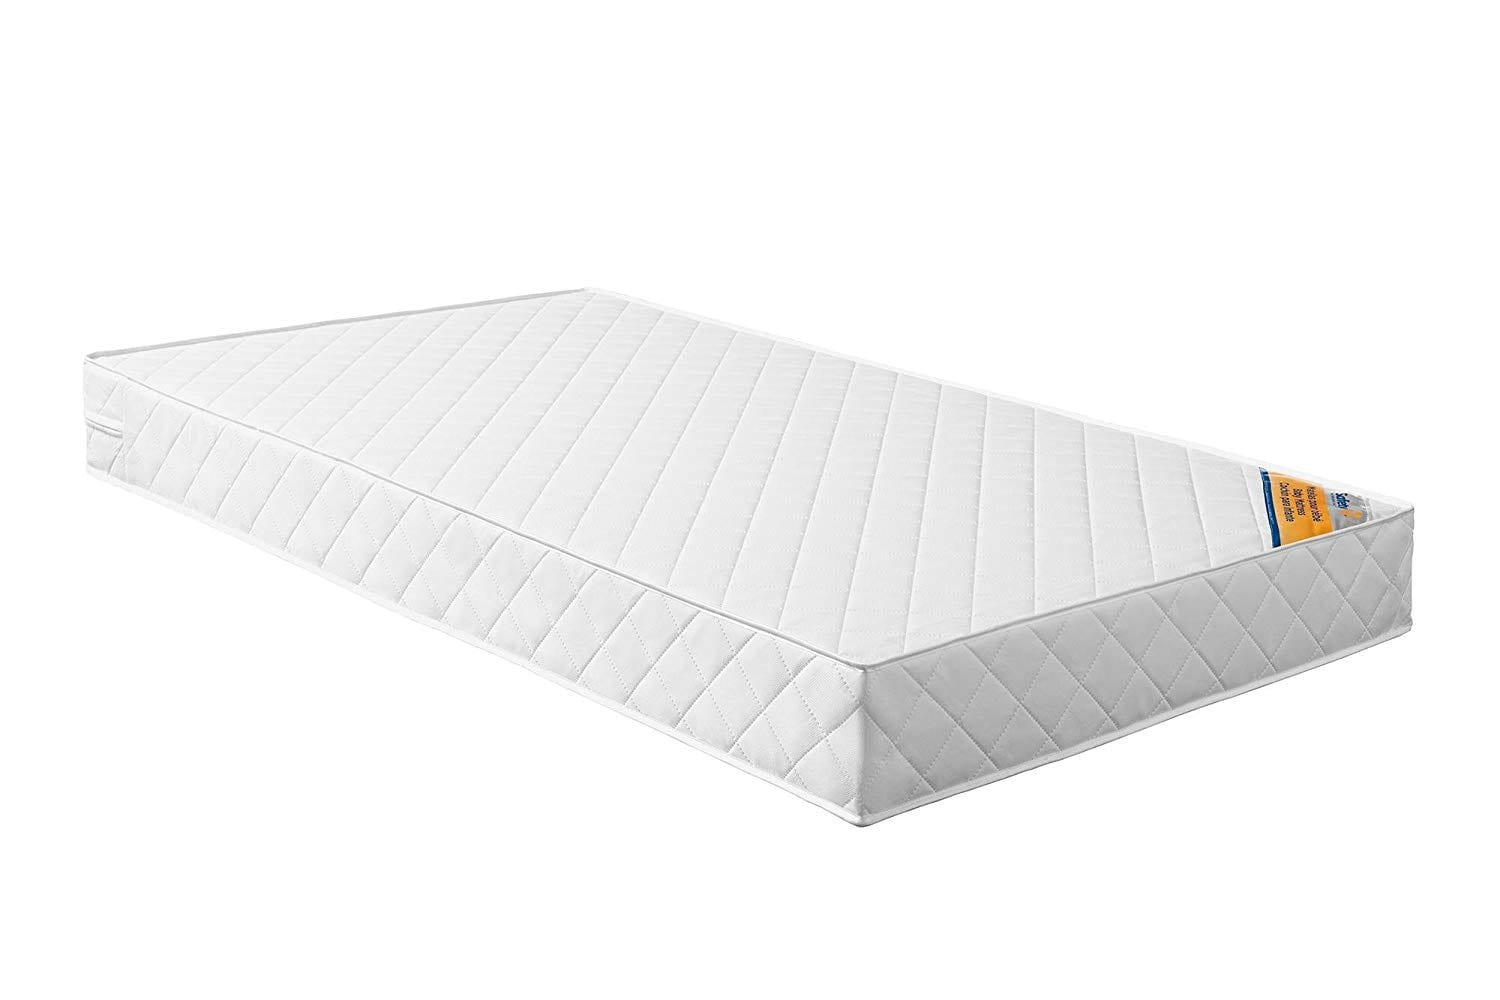 Safety 1st Best Crib Mattress Reviews by www.snoremagazine.com